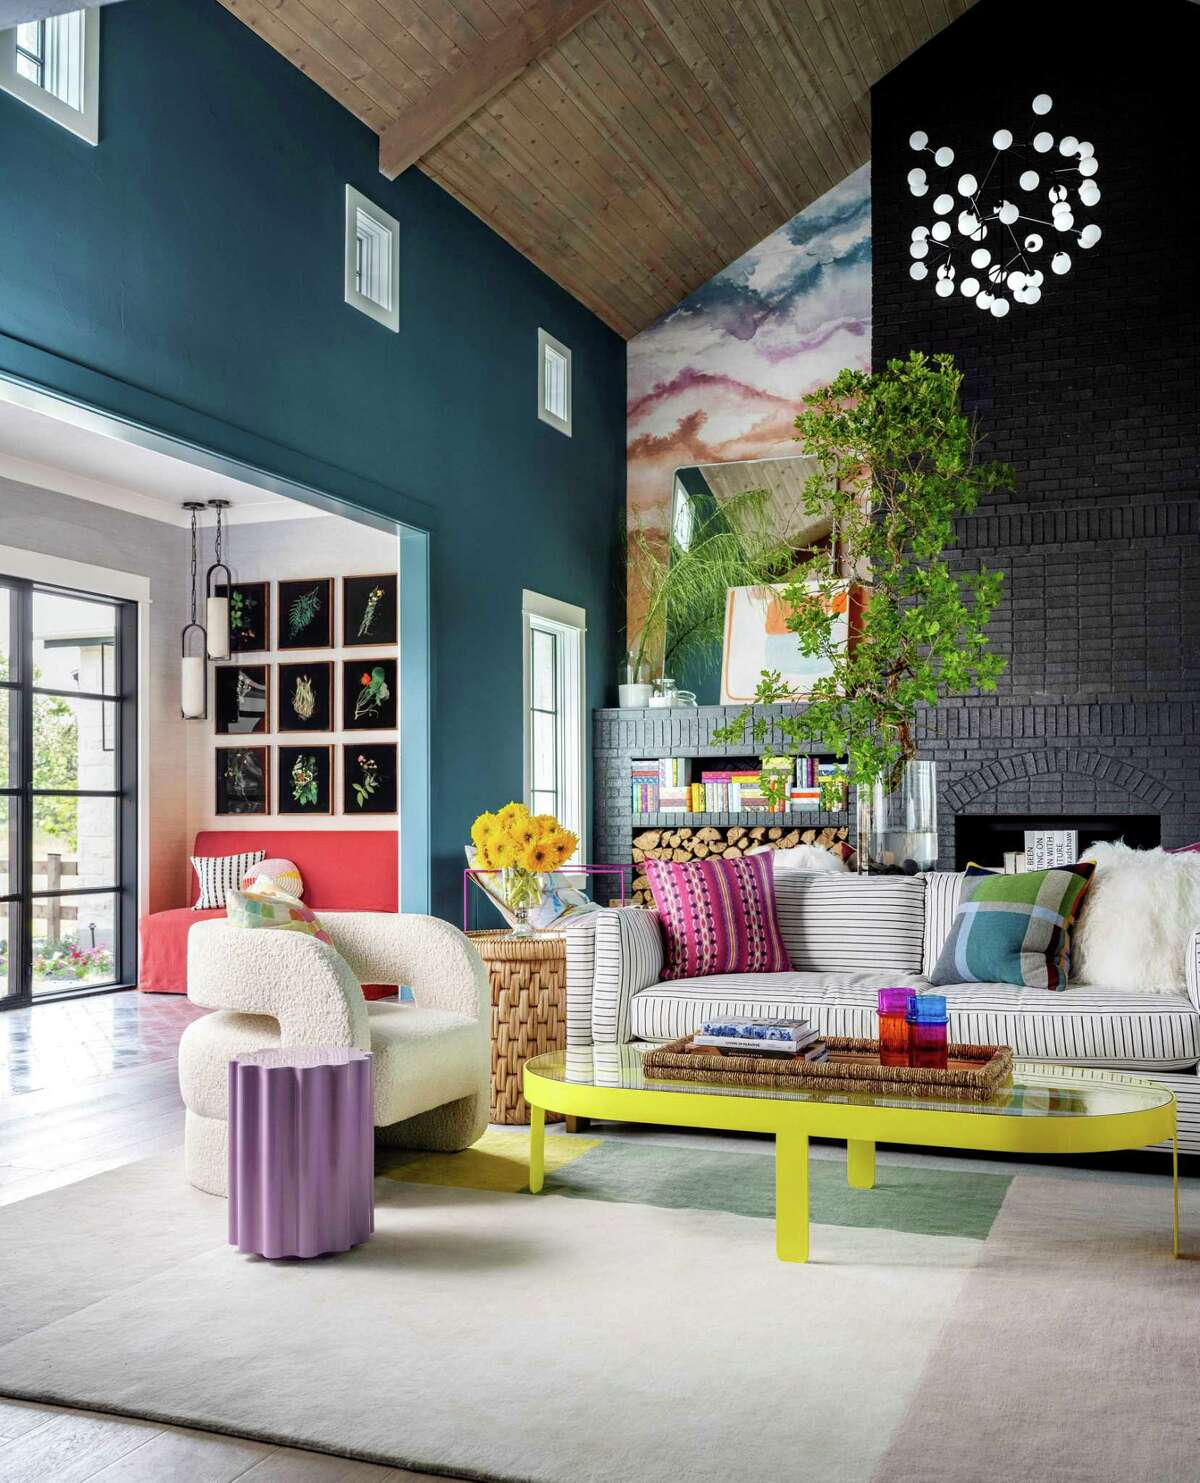 The entryway and living room of the 2021 Whole Home Concept House was designed by Emilie Munroe of the San Francisco firm Studio Munroe. The massive space has a 20-foot-high vaulted ceiling and an inky black brick fireplace flanked by dramatic multicolored wall coverings.